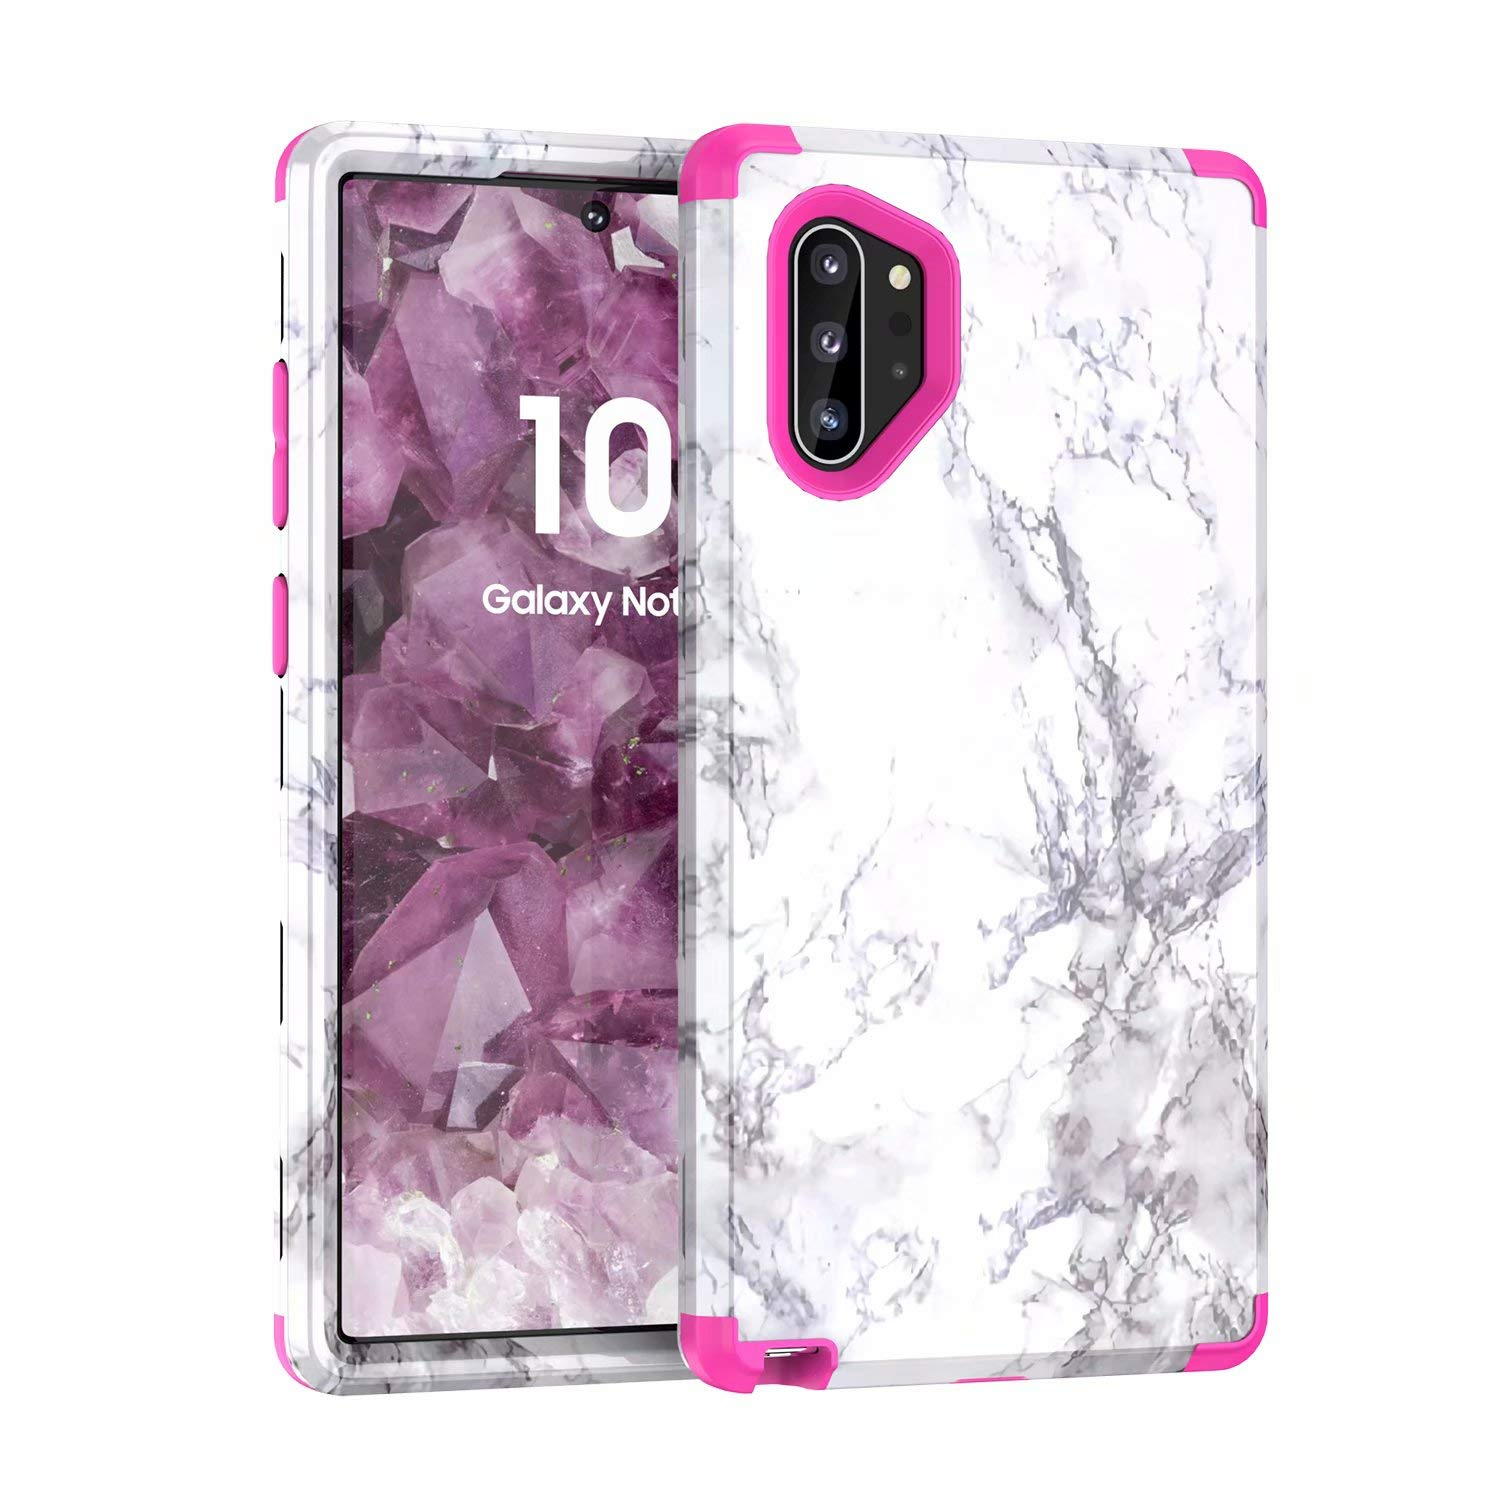 Galaxy Note 10+ Plus Case, Ranyi Marble Pattern 360 Full Body Protection 3 in 1 Hybrid Bumper Shock Absorbing High Impact Heavy Duty Defender Case for Samsung Galaxy Note 10+ Plus/Pro/5G (hot Pink) by Ranyi